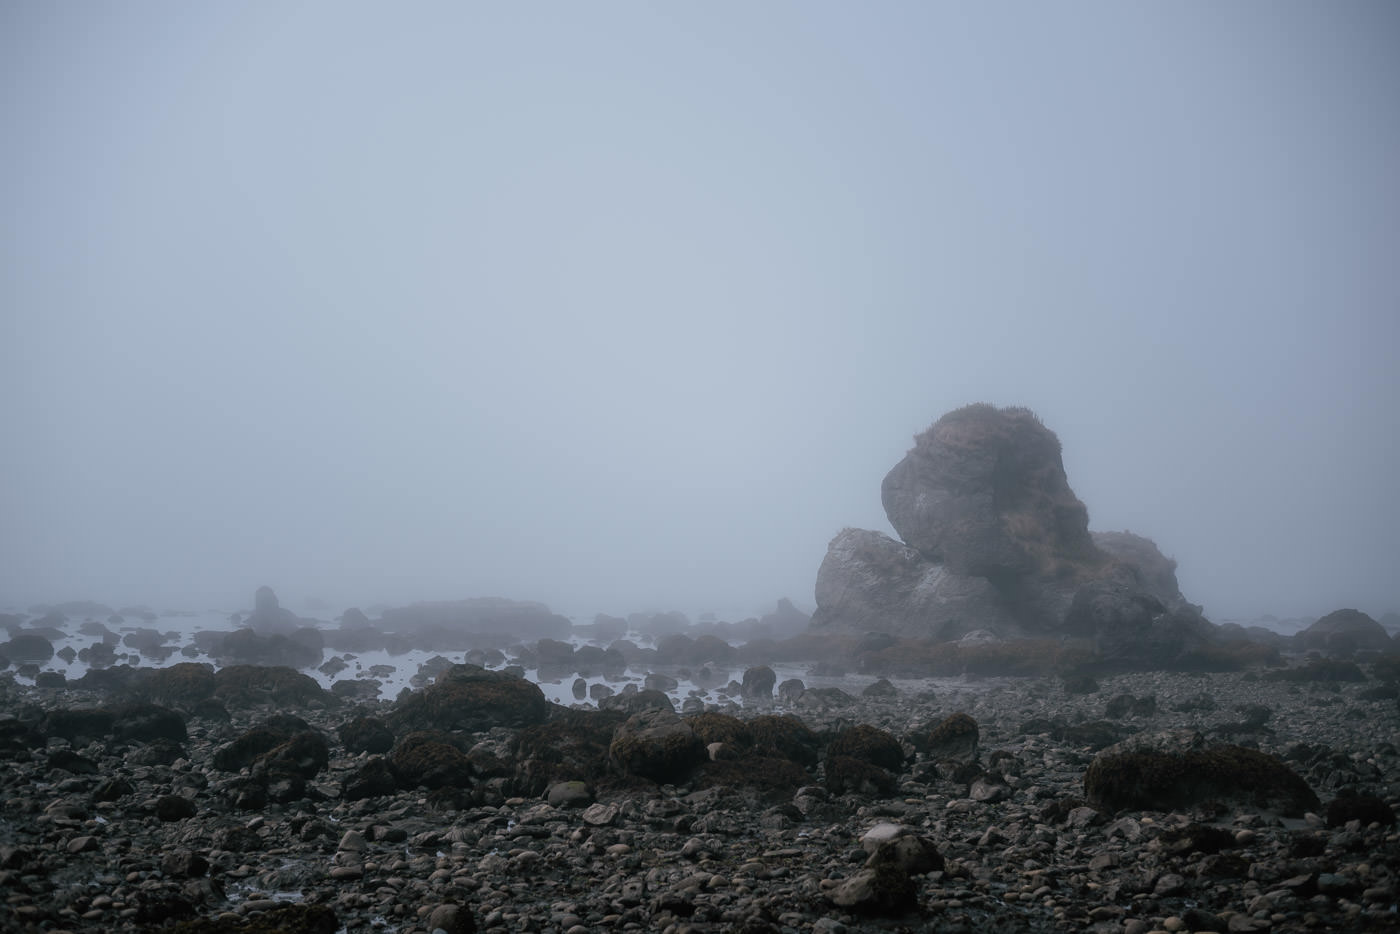 Fog obscures the rocks exposed by the low tide at Ozette Beach in Olympic National Park.